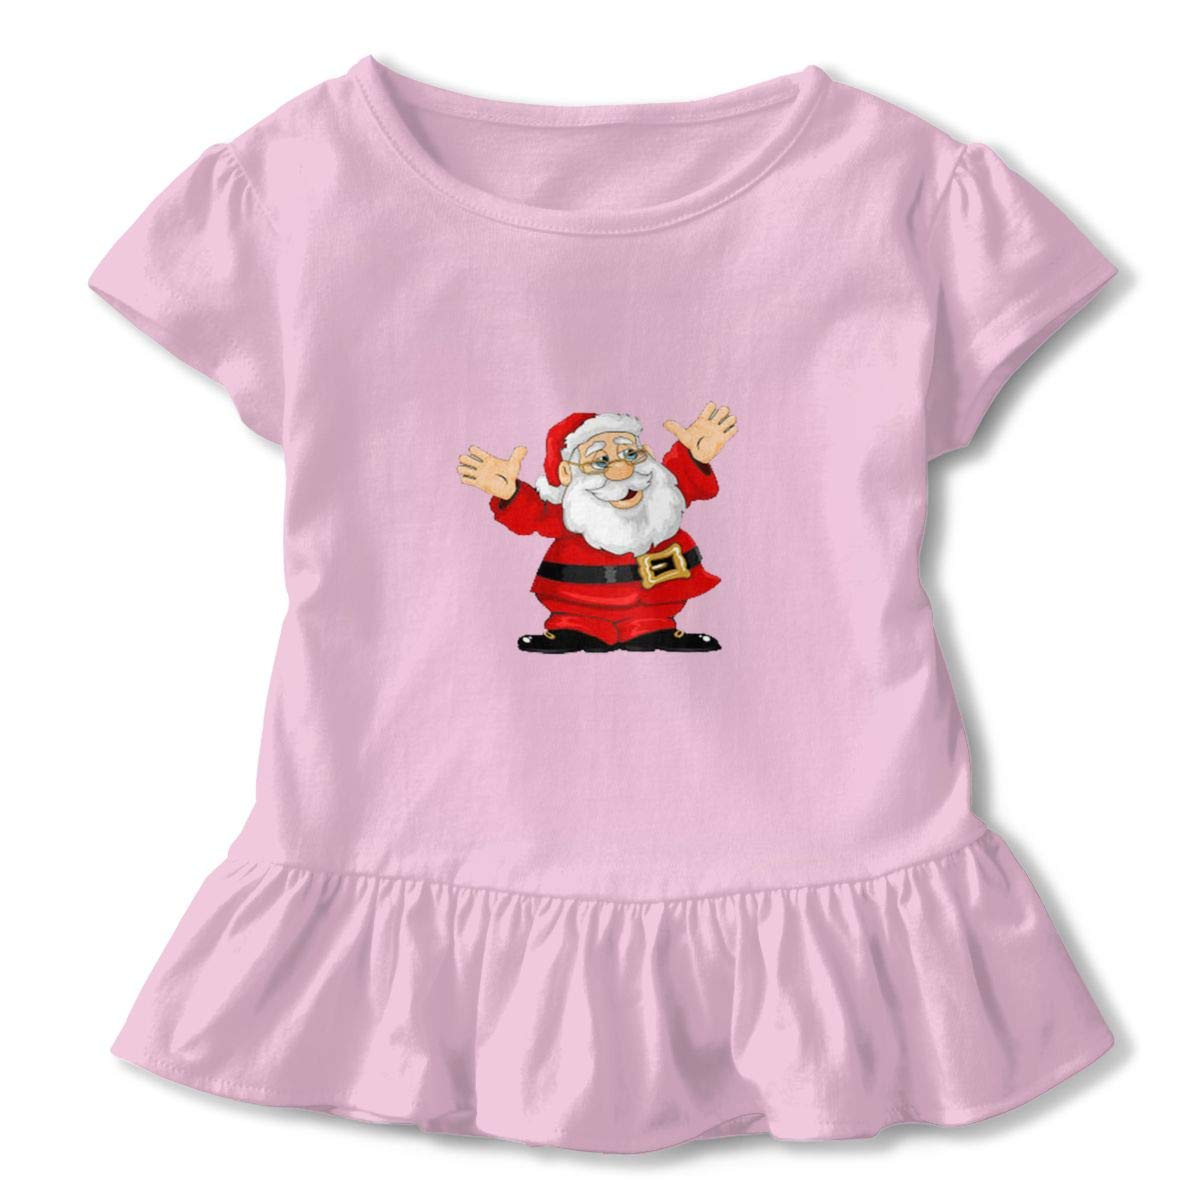 Kwai-h Santa Claus Outdoor Lover Short-Sleeve Tunic T-Shirt